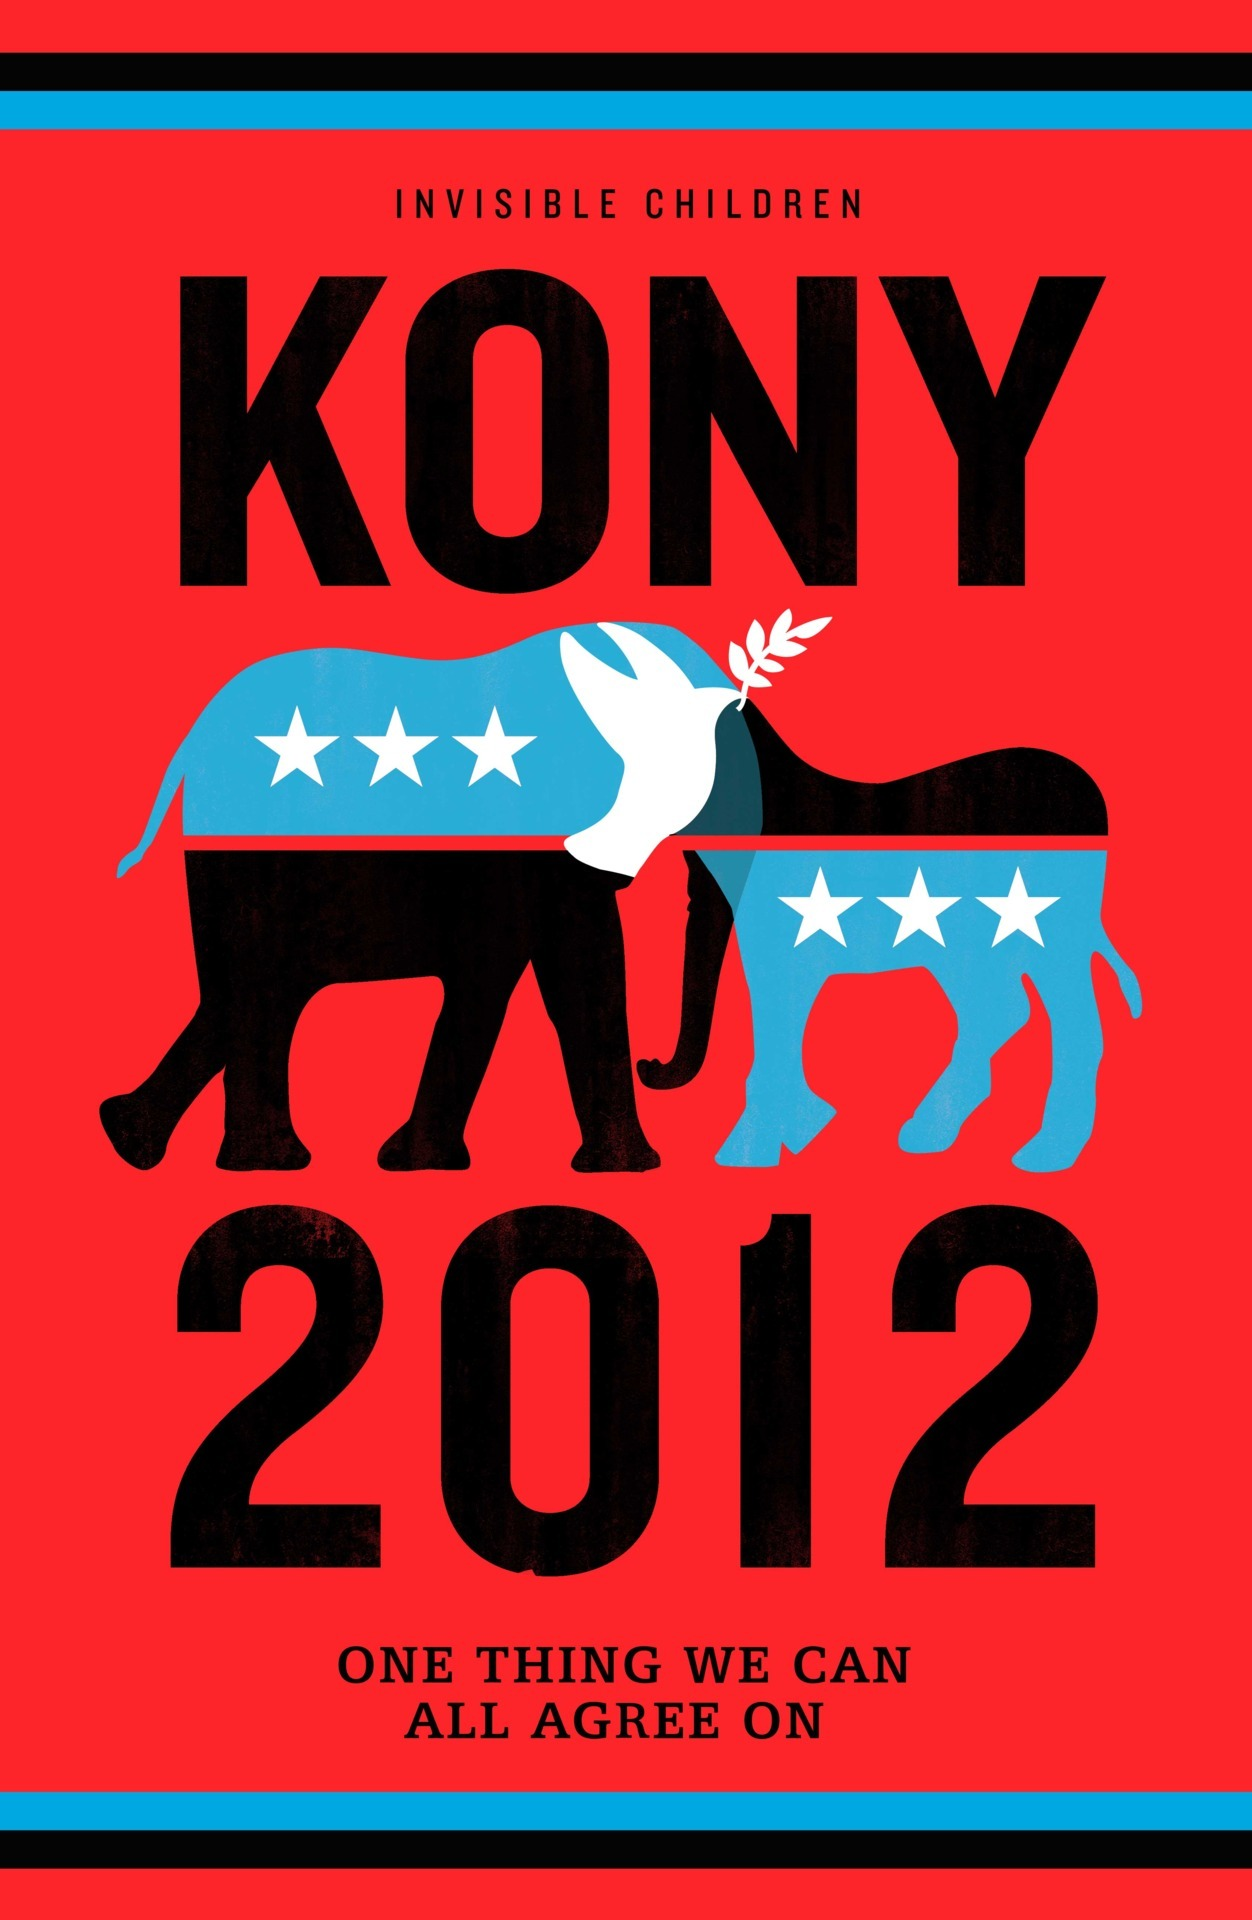 eatsleepdraw:  KONY 2012 is a film and campaign by Invisible Children that aims to make Joseph Kony famous, not to celebrate him, but to raise support for his arrest and set a precedent for international justice. Watch the film here